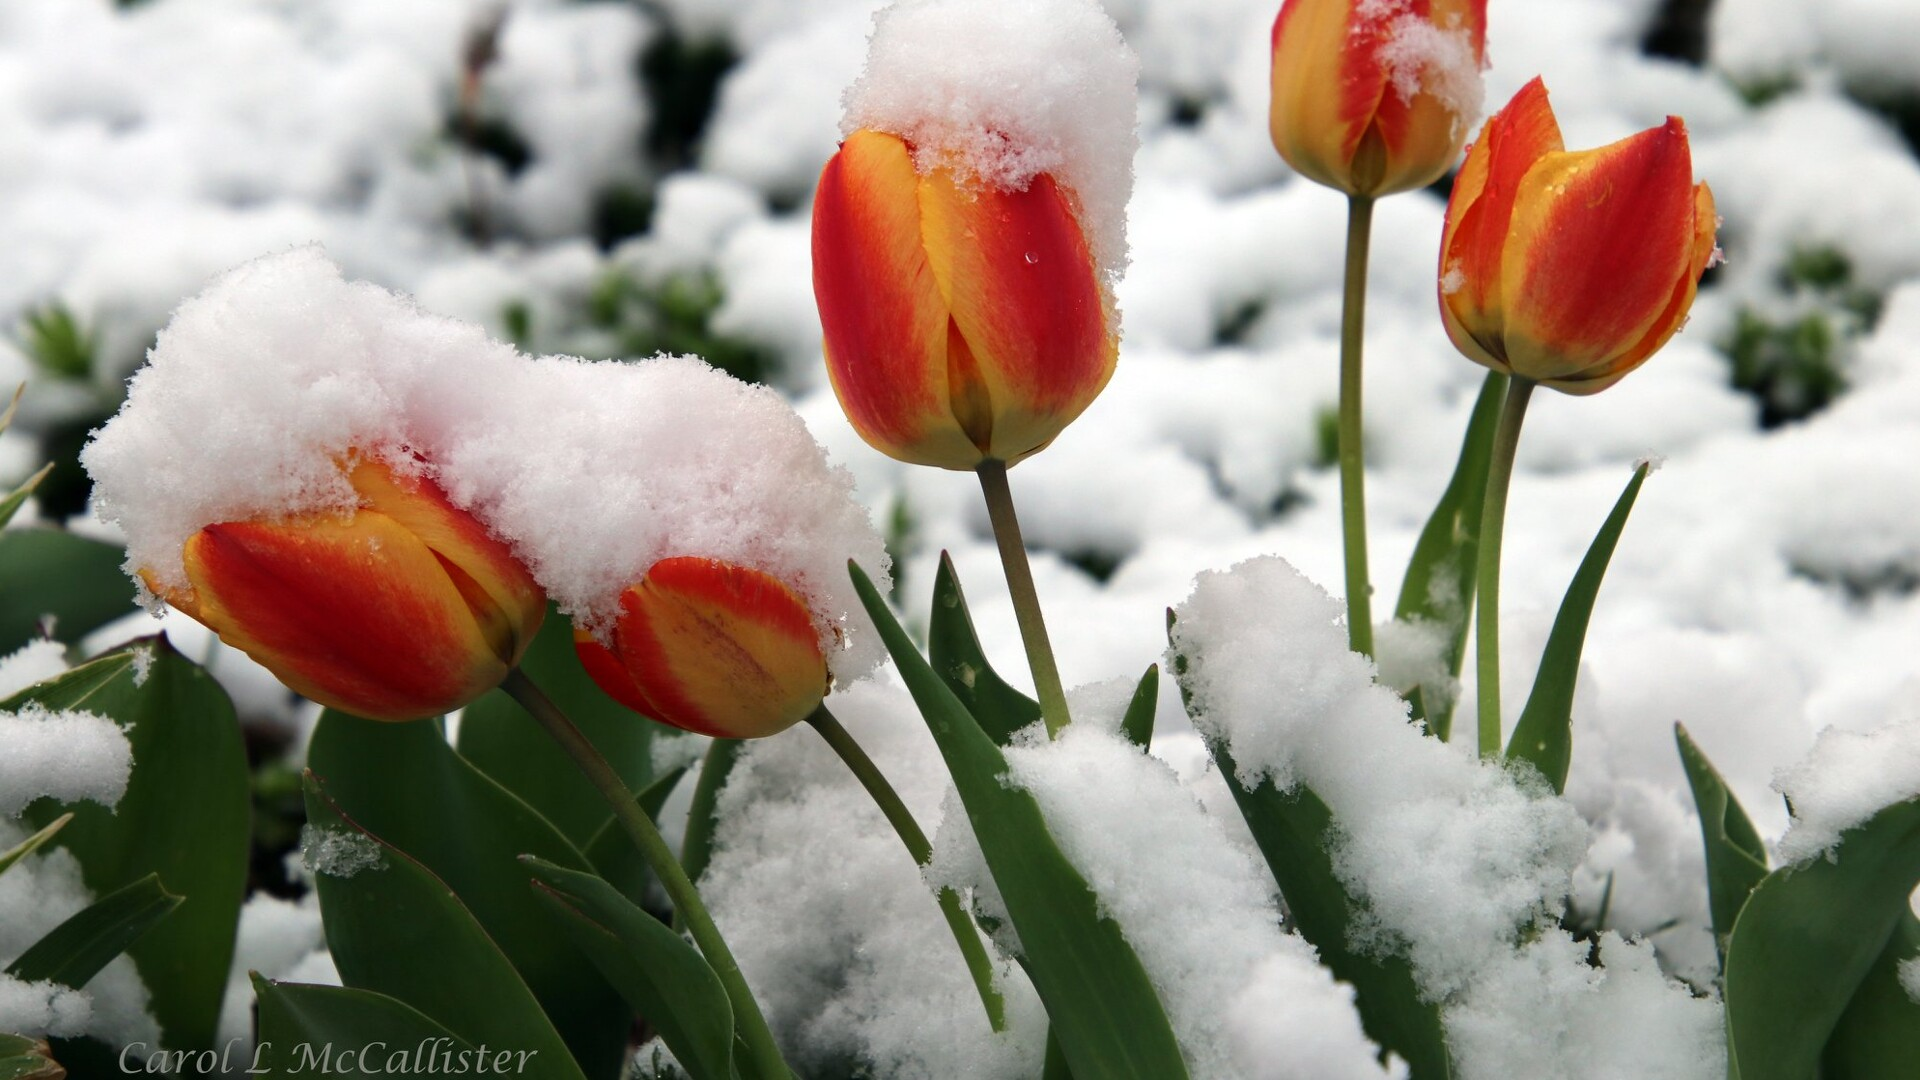 Snow Flowers Carol McCallister.jpg